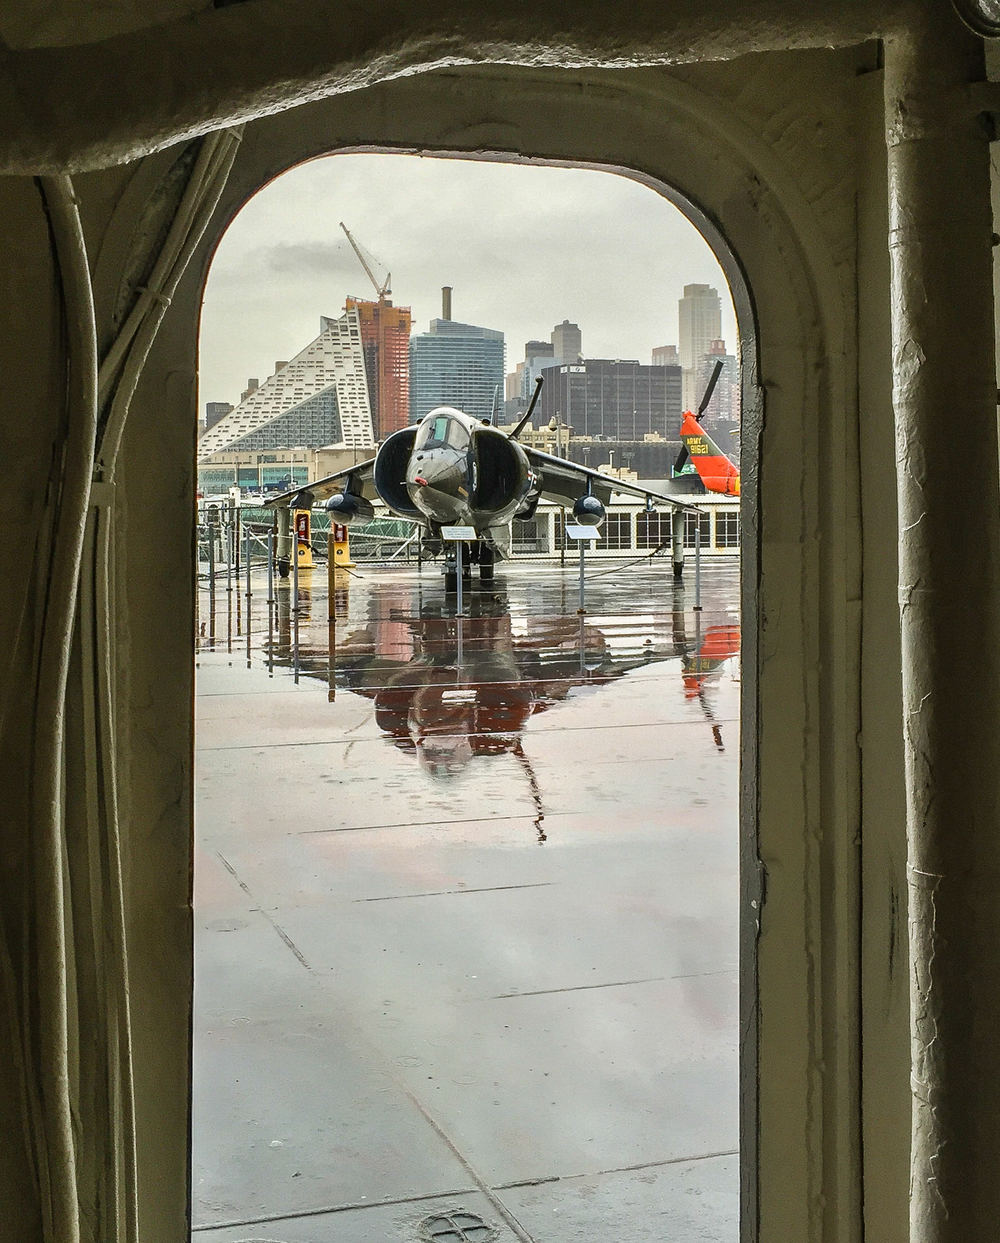 Harrier and reflection through island hatchway